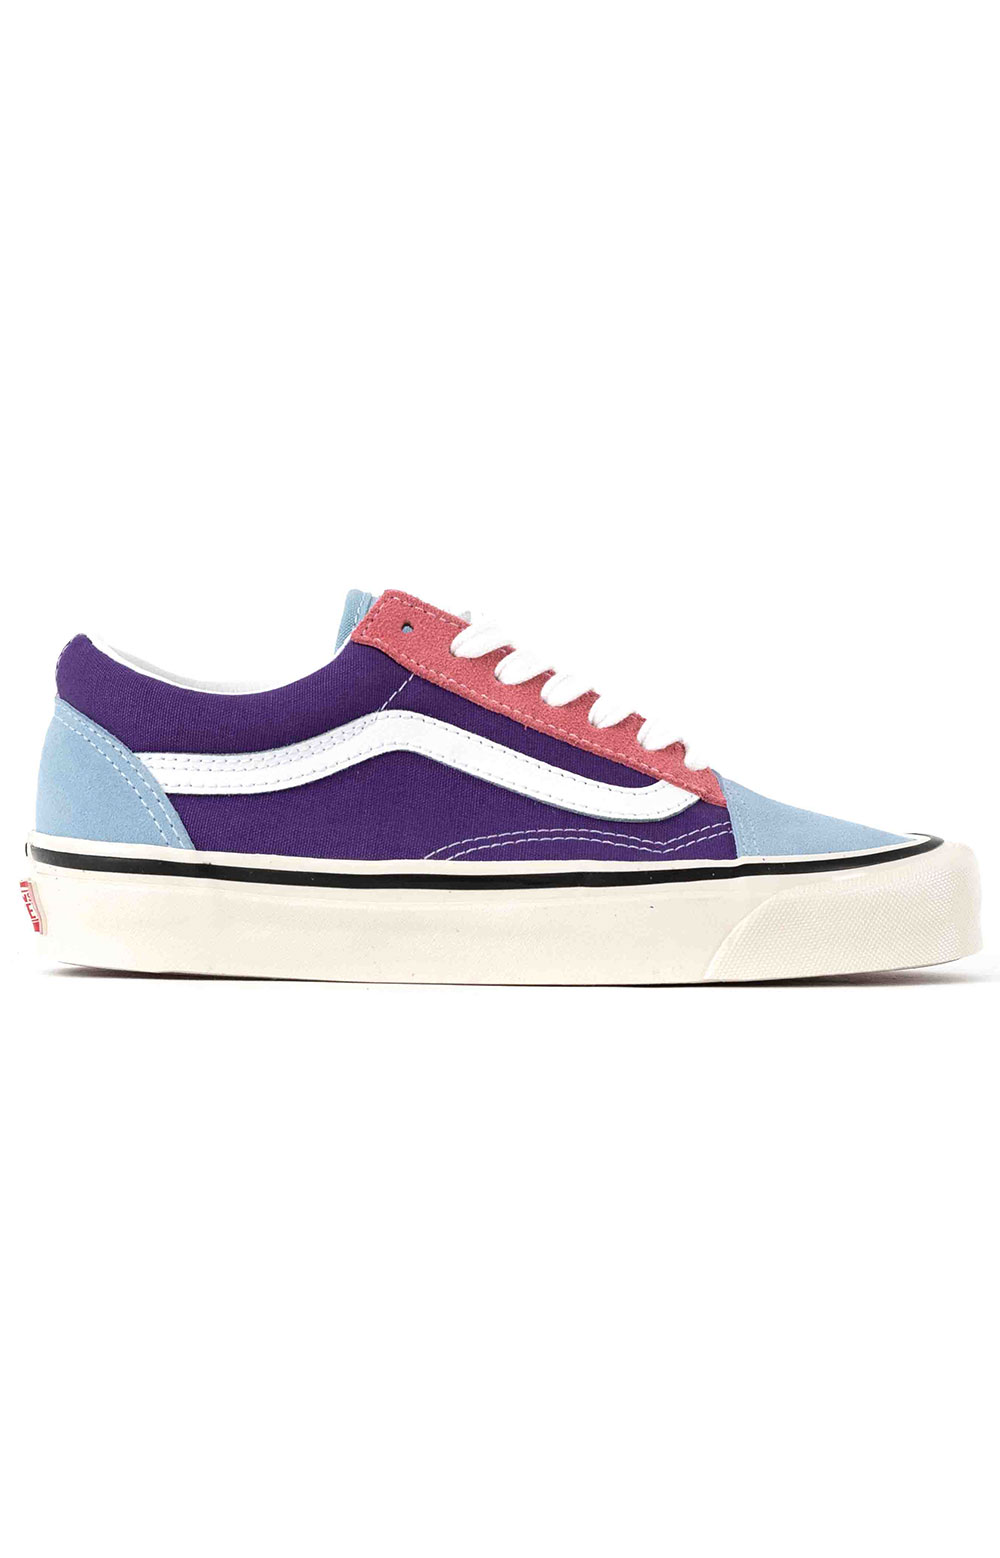 (8G2XFL) Anaheim Factory Old Skool 36 DX Shoes - OG Light Blue/OG Purple/OG Pink